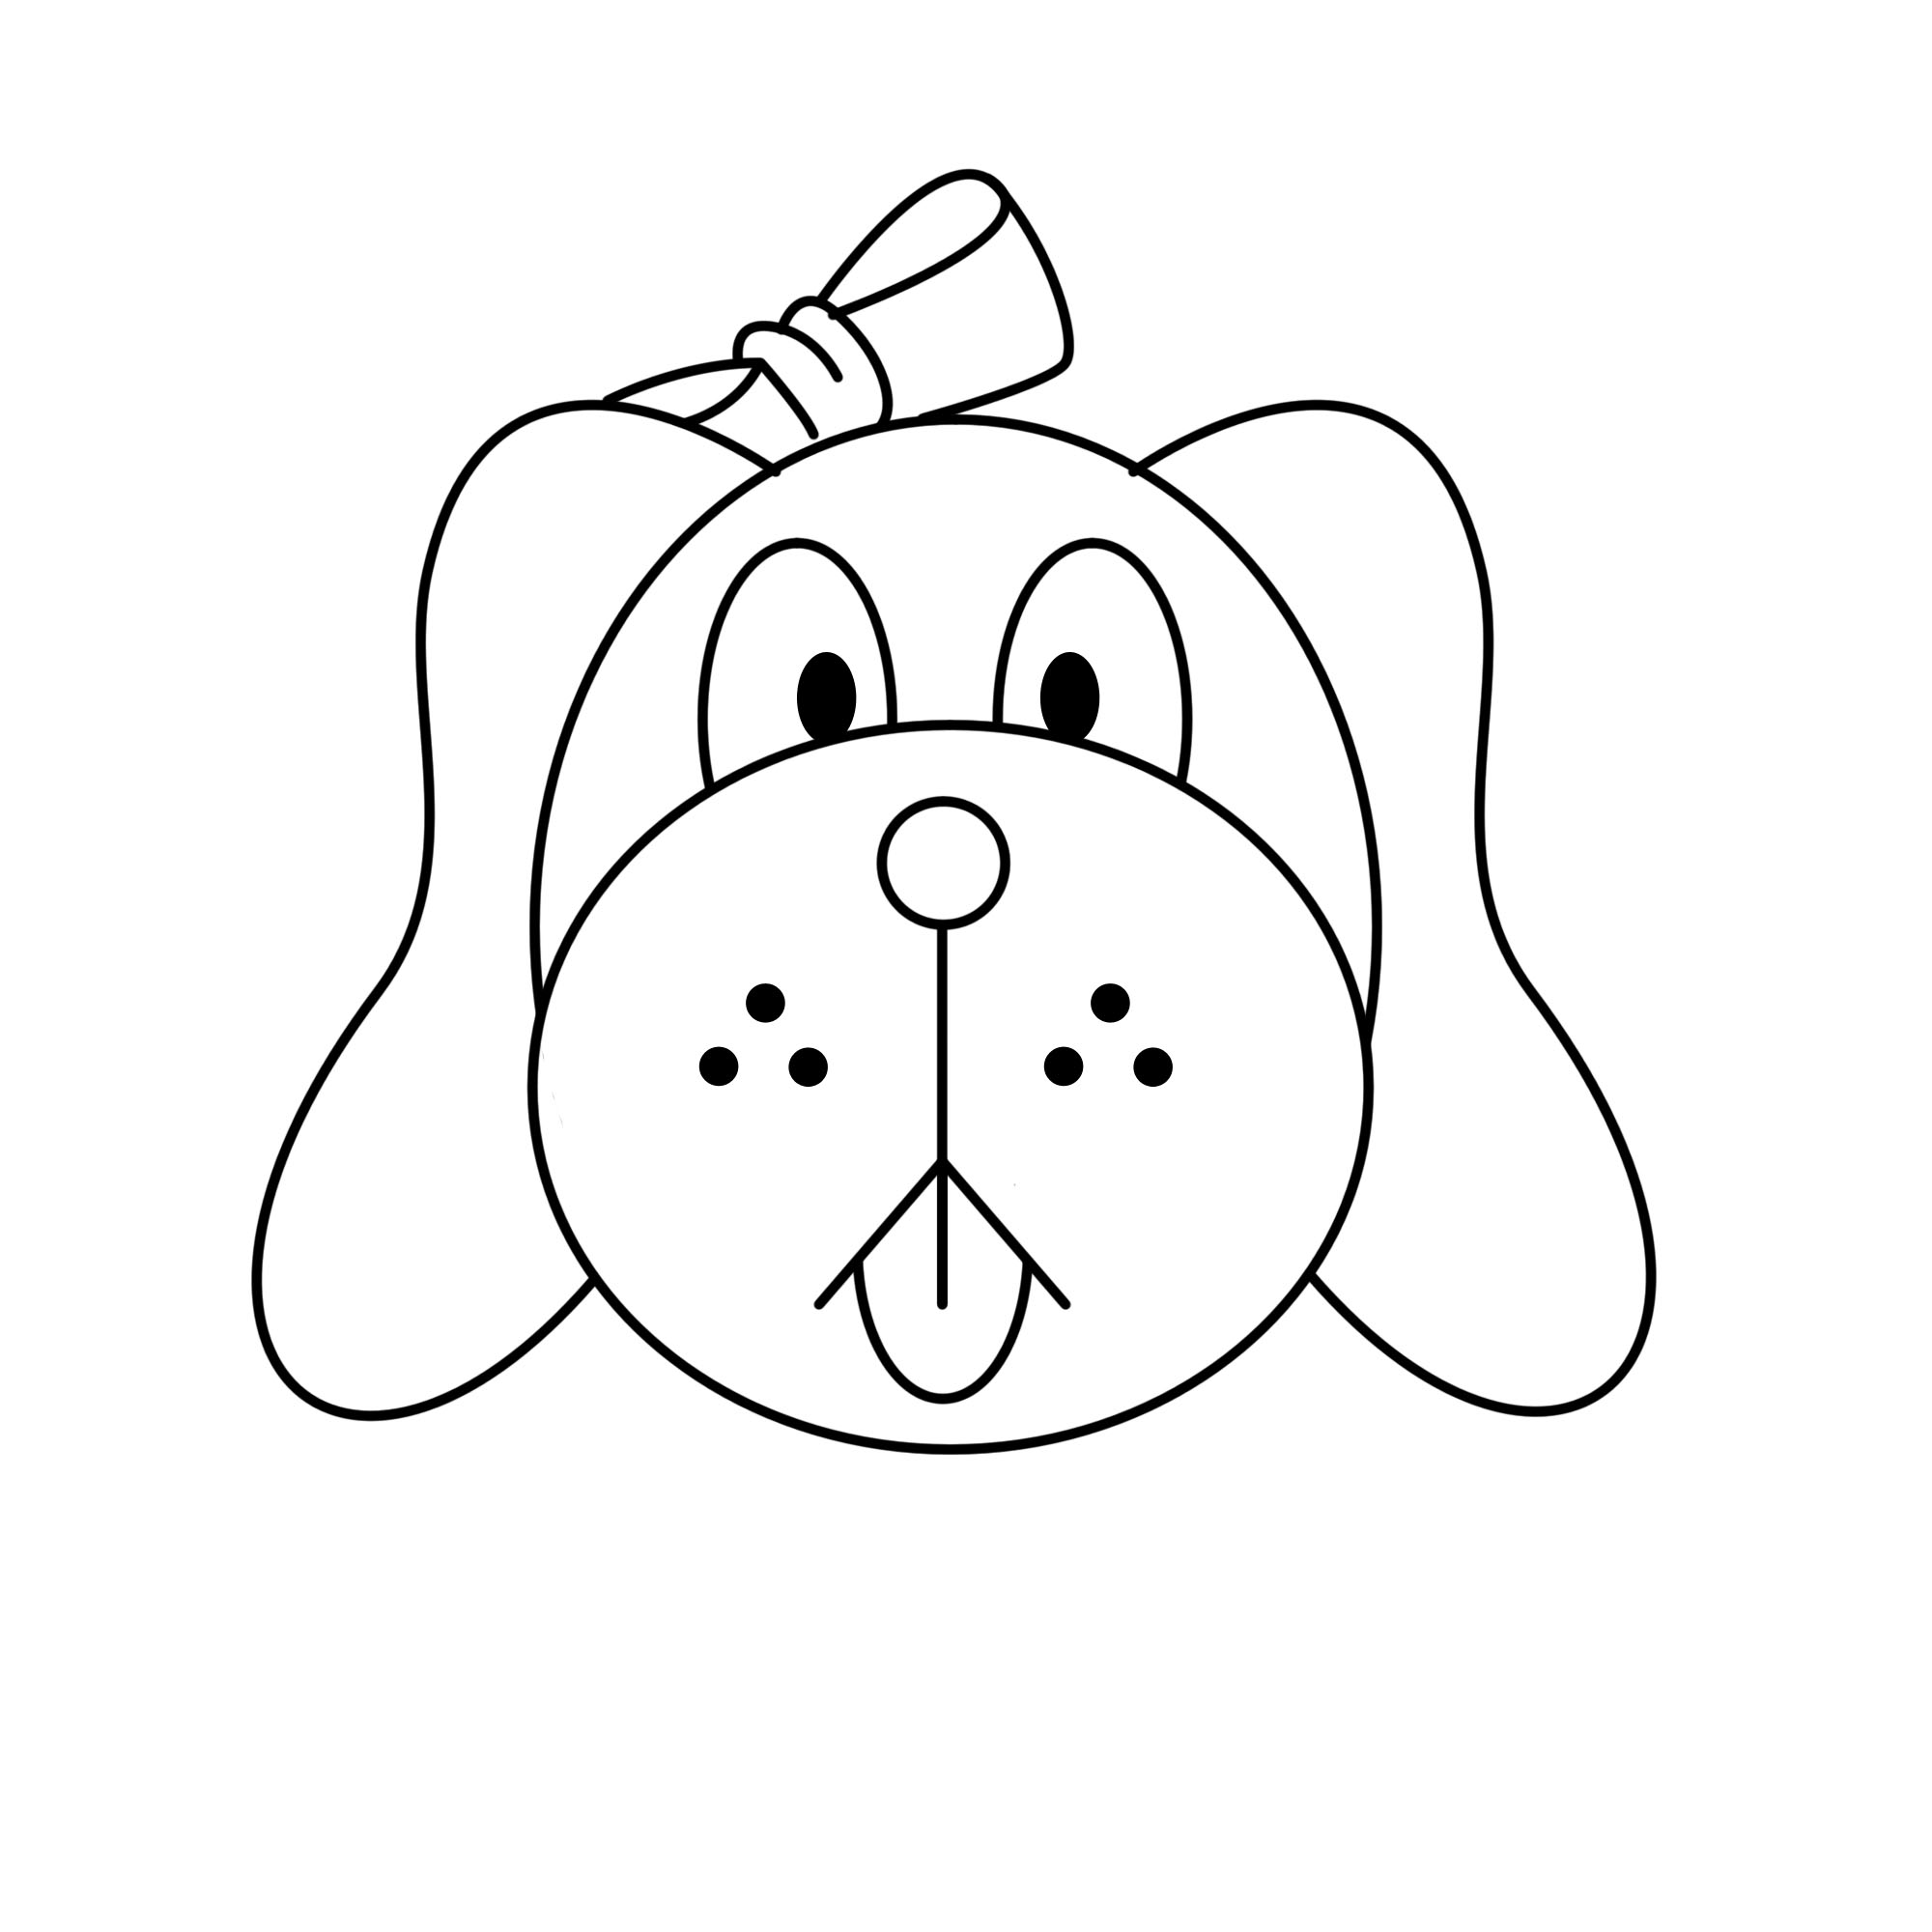 How To Draw A Dog Face With Pictures